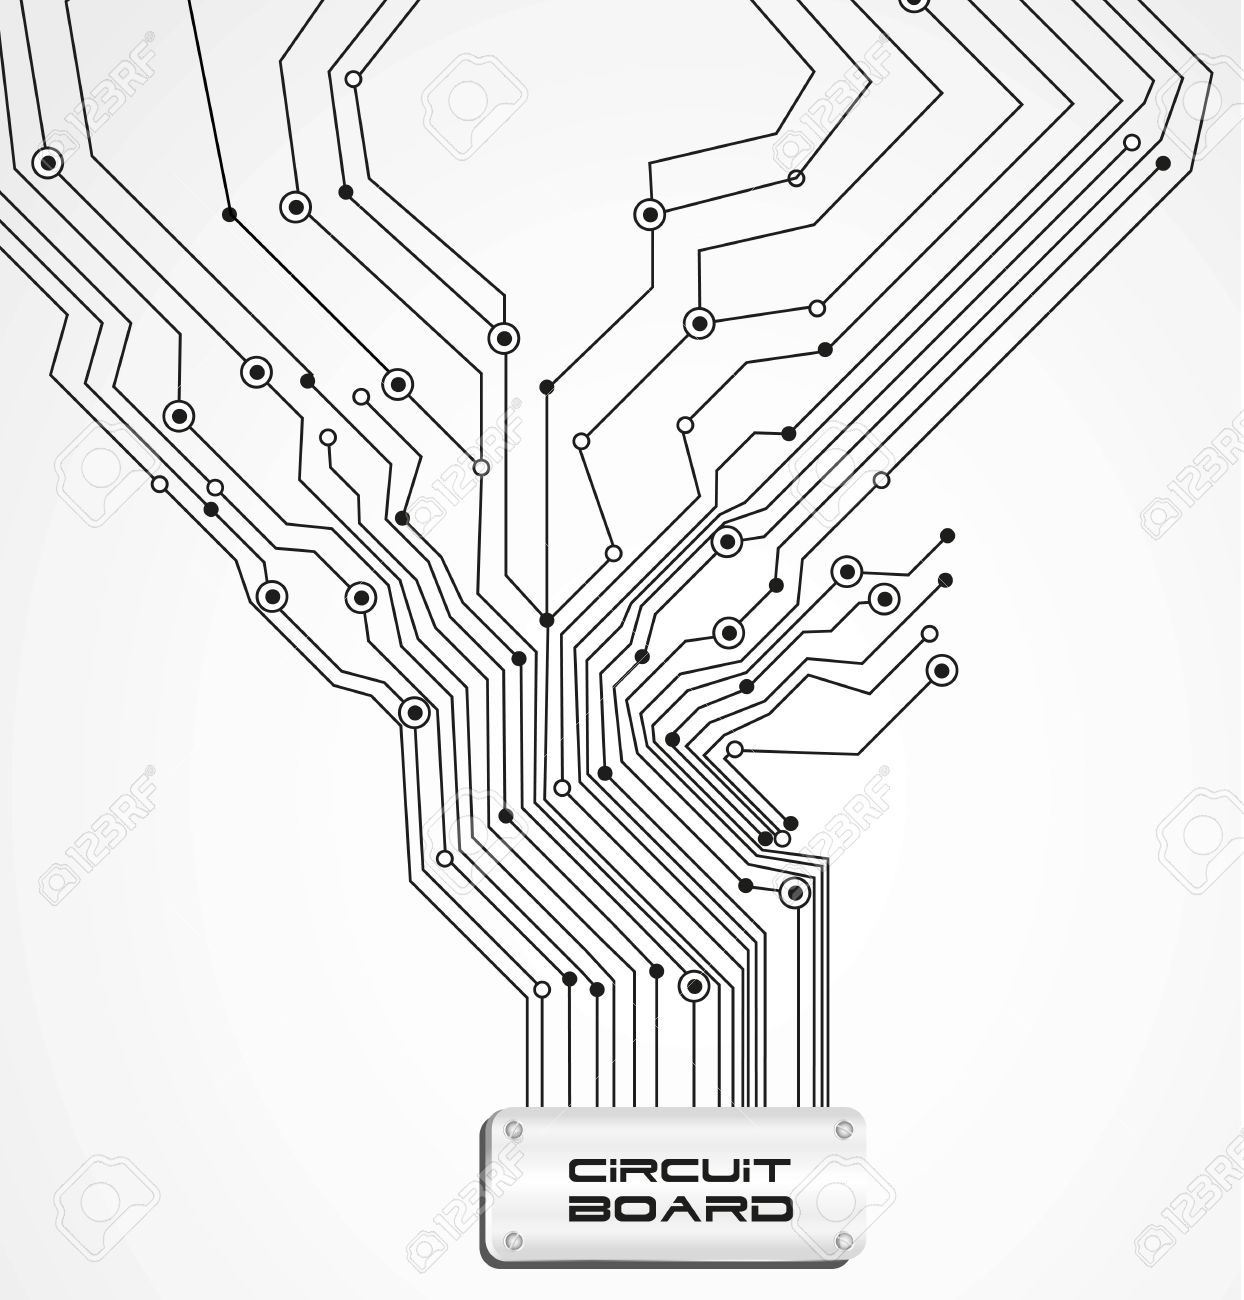 Circuit Board On White Background Illustration Royalty Free Cliparts ...